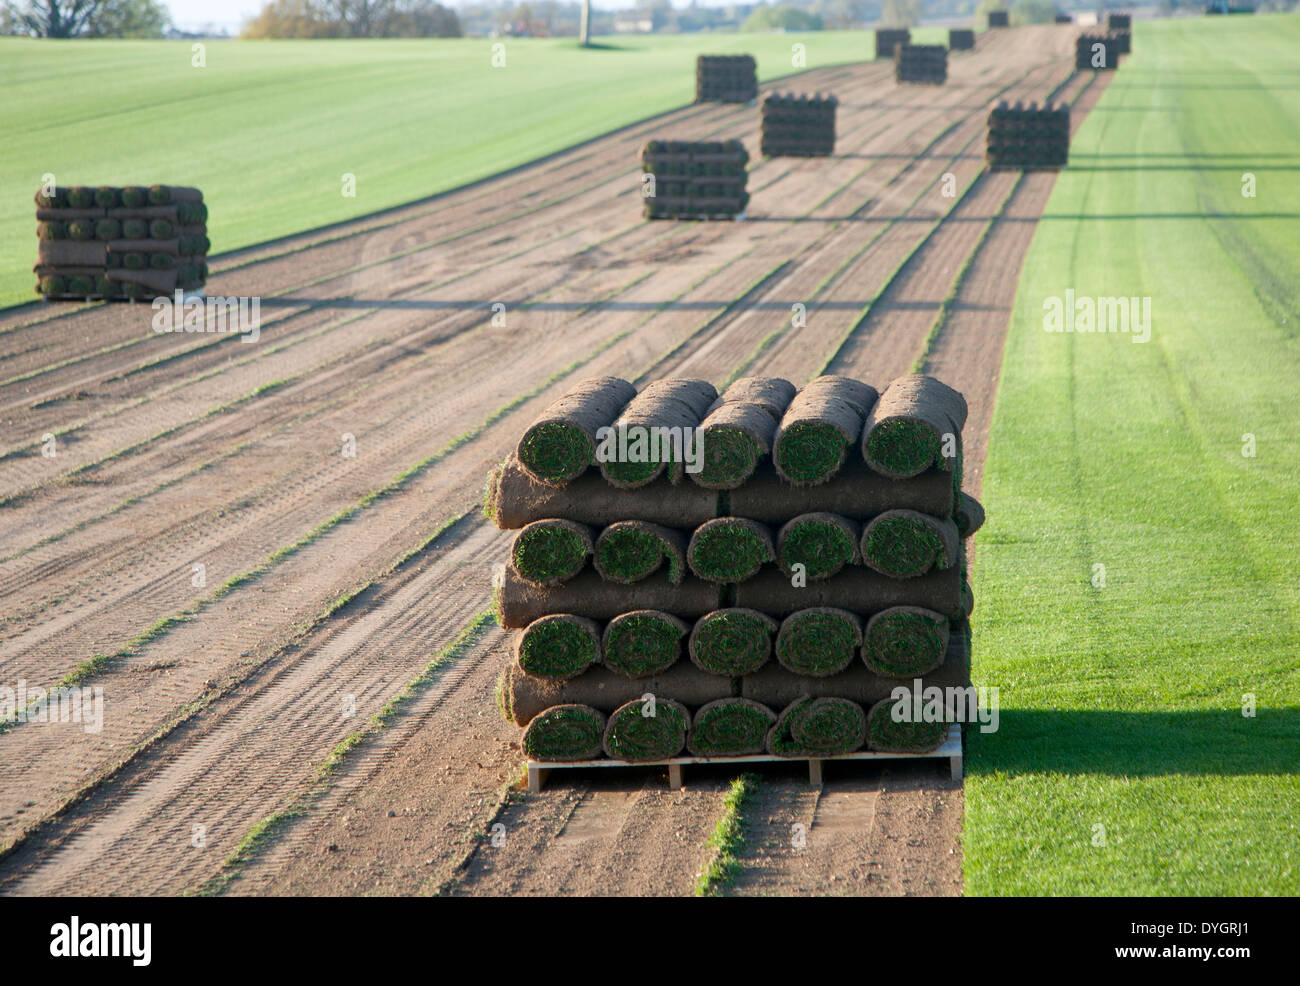 Rolls of turf grass standing on a pallet in a field, Blaxhall, Suffolk, England - Stock Image